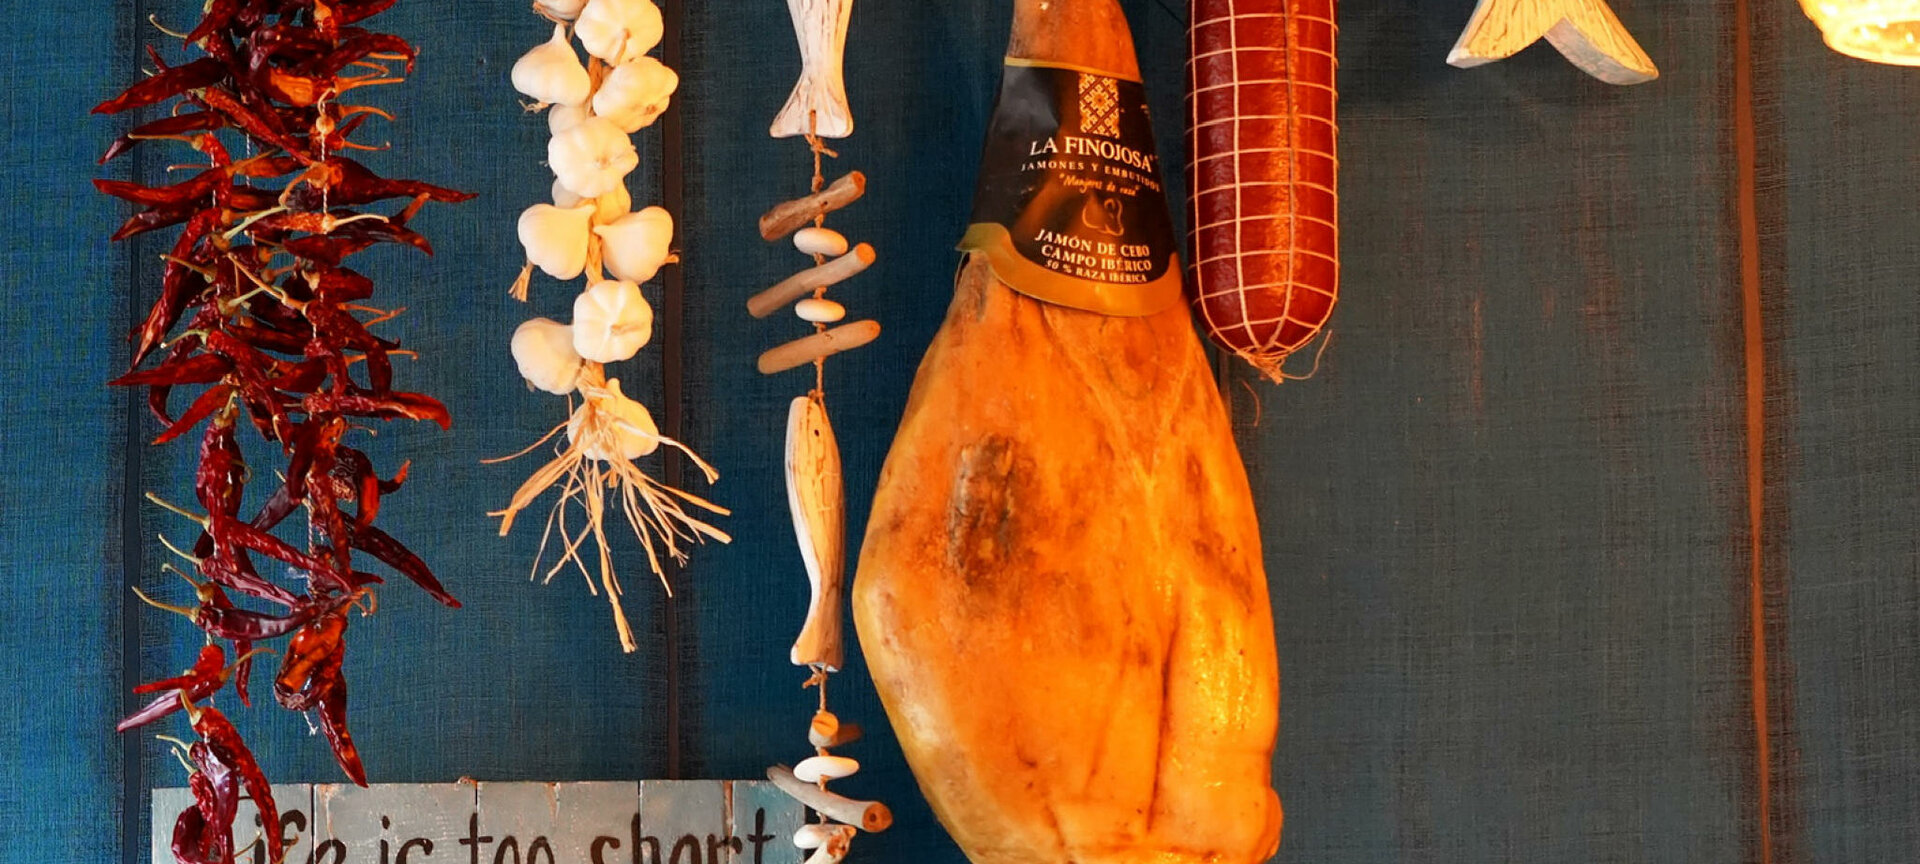 Brasserie-Restaurant Remise New Style - Gezellig op ons terras